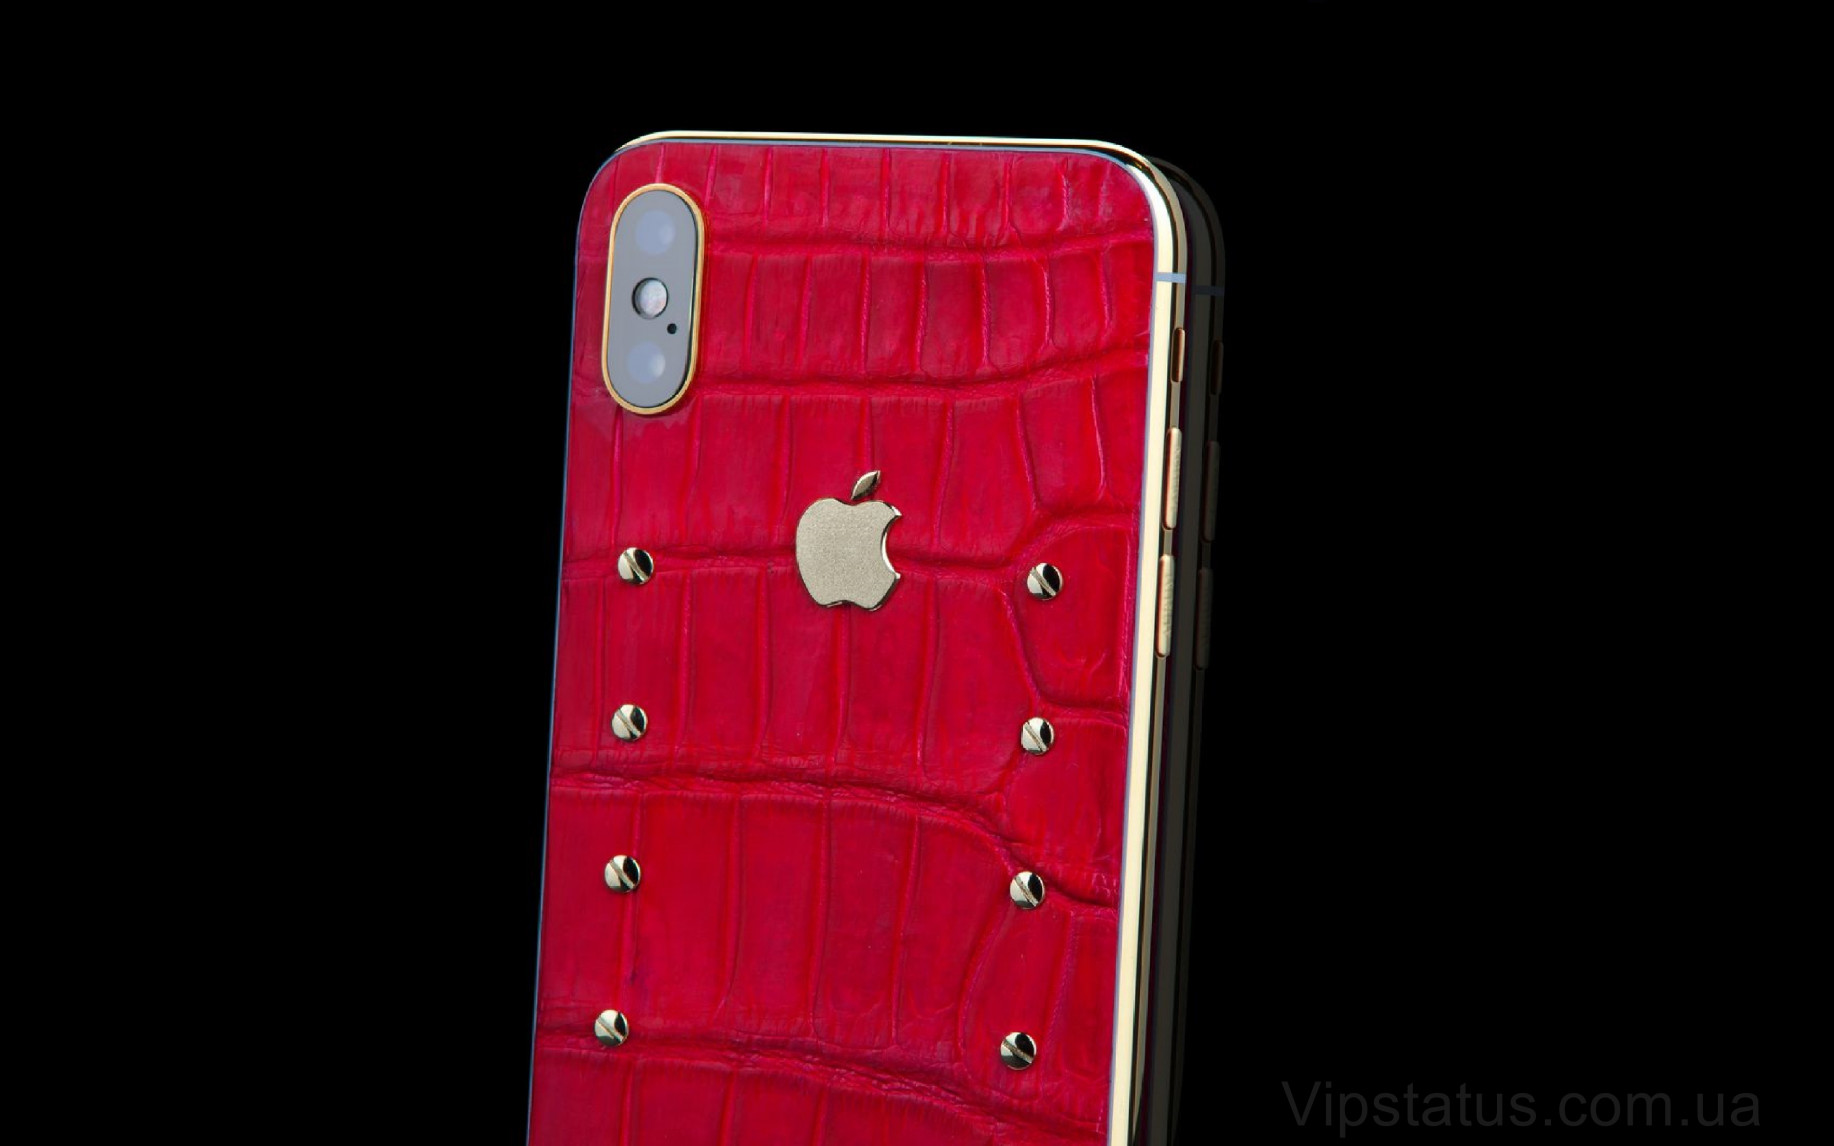 Элитный Red Princess IPHONE 11 PRO MAX 512 GB Red Princess IPHONE 11 PRO MAX 512 GB изображение 2